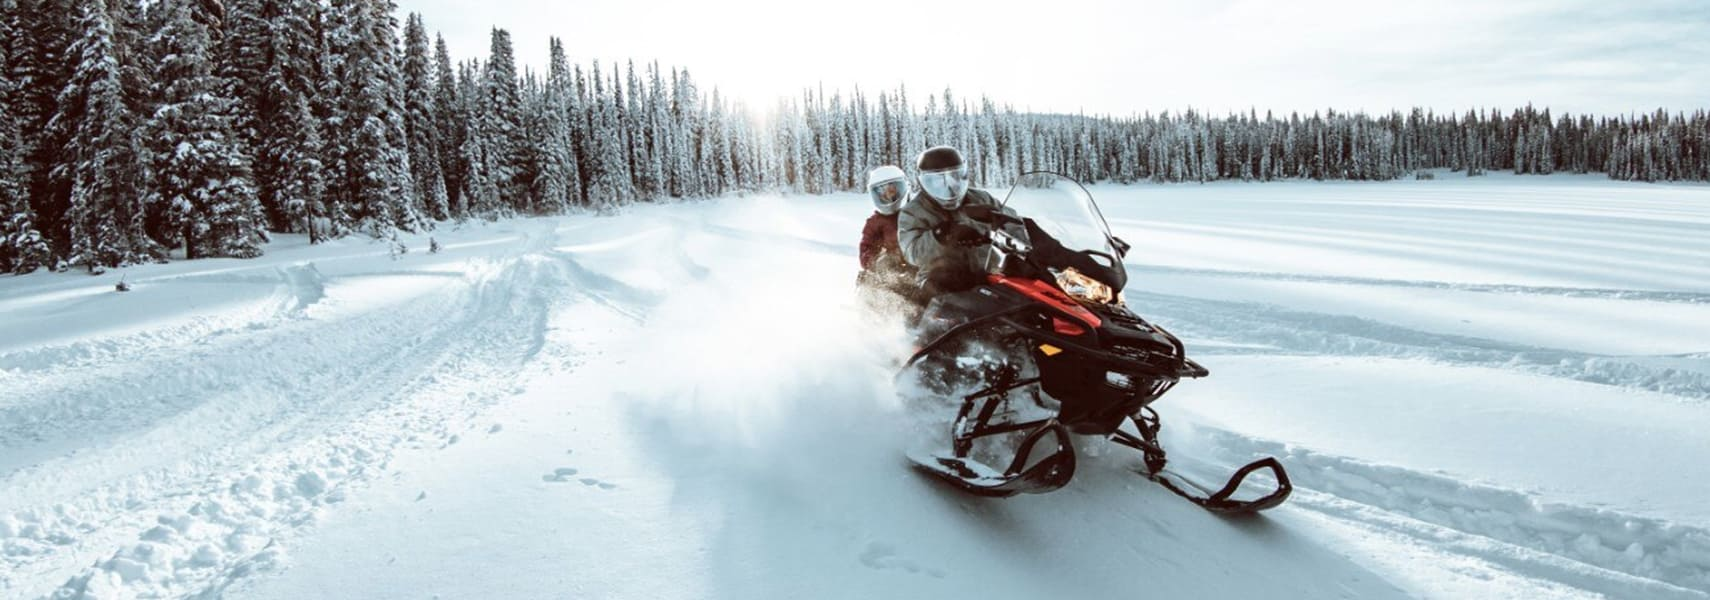 Ski-Doo - 2021 Expedition LE